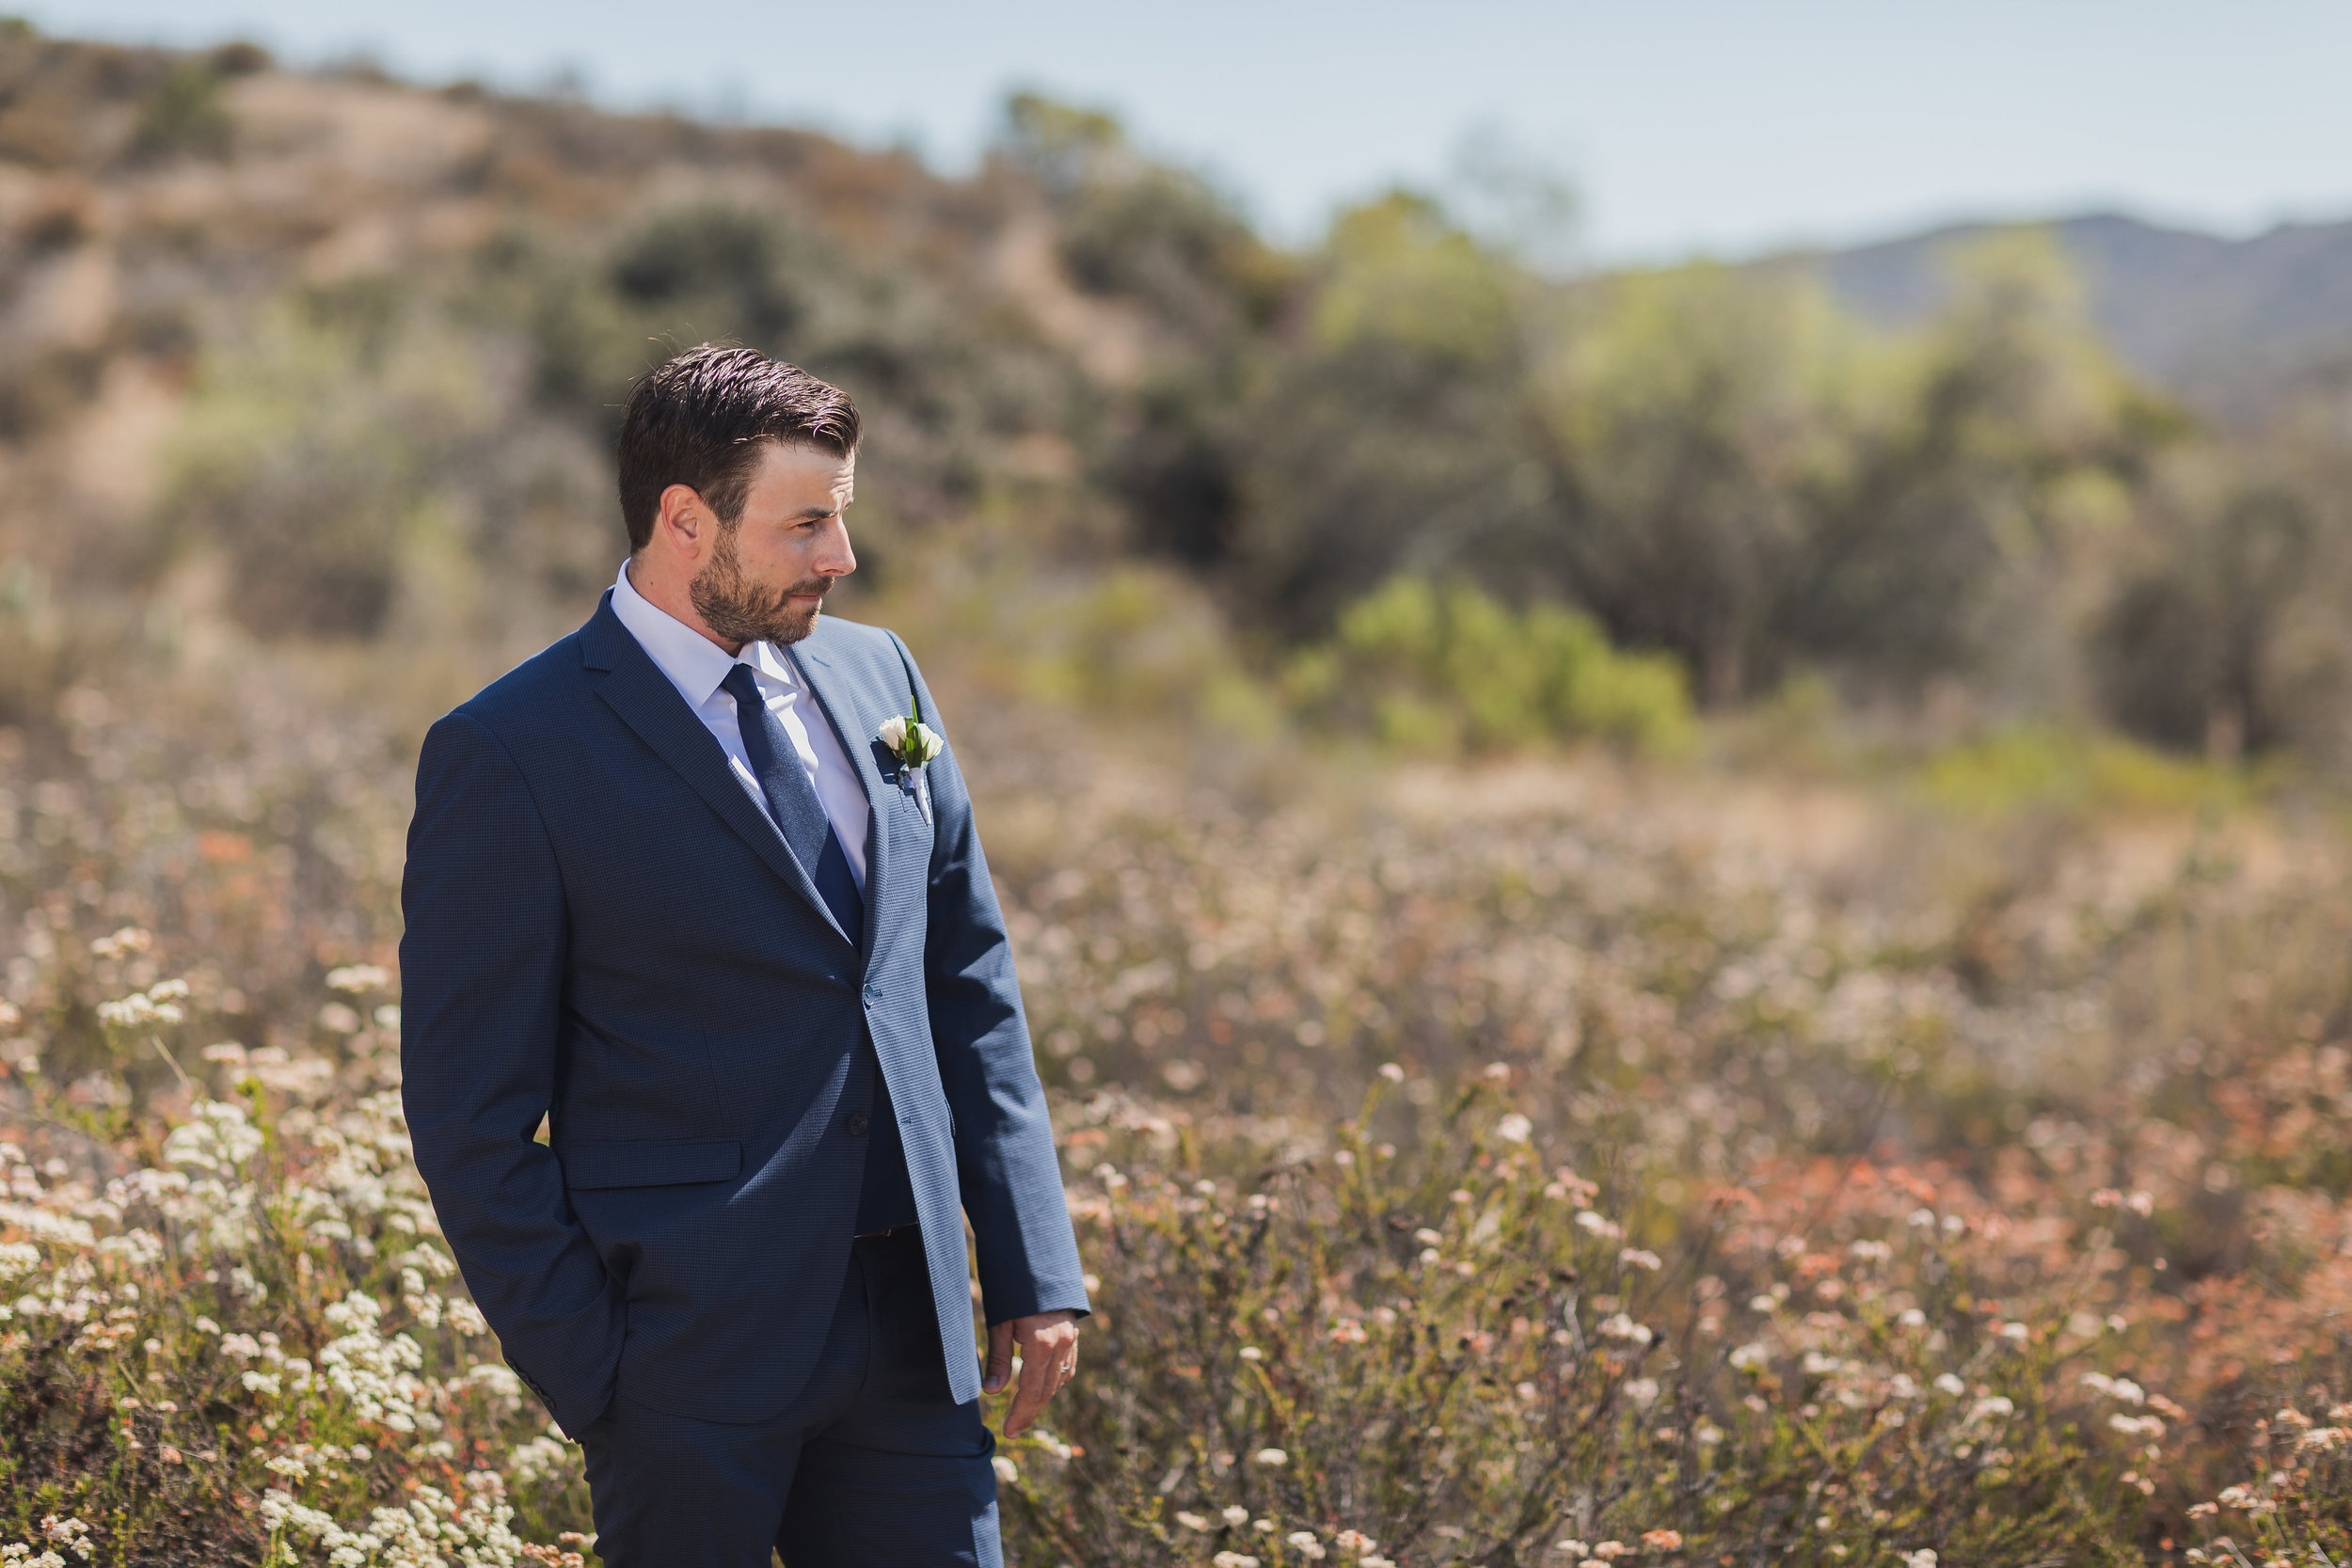 Groom Portraits at James Dilley Greenbelt Preserve.jpg